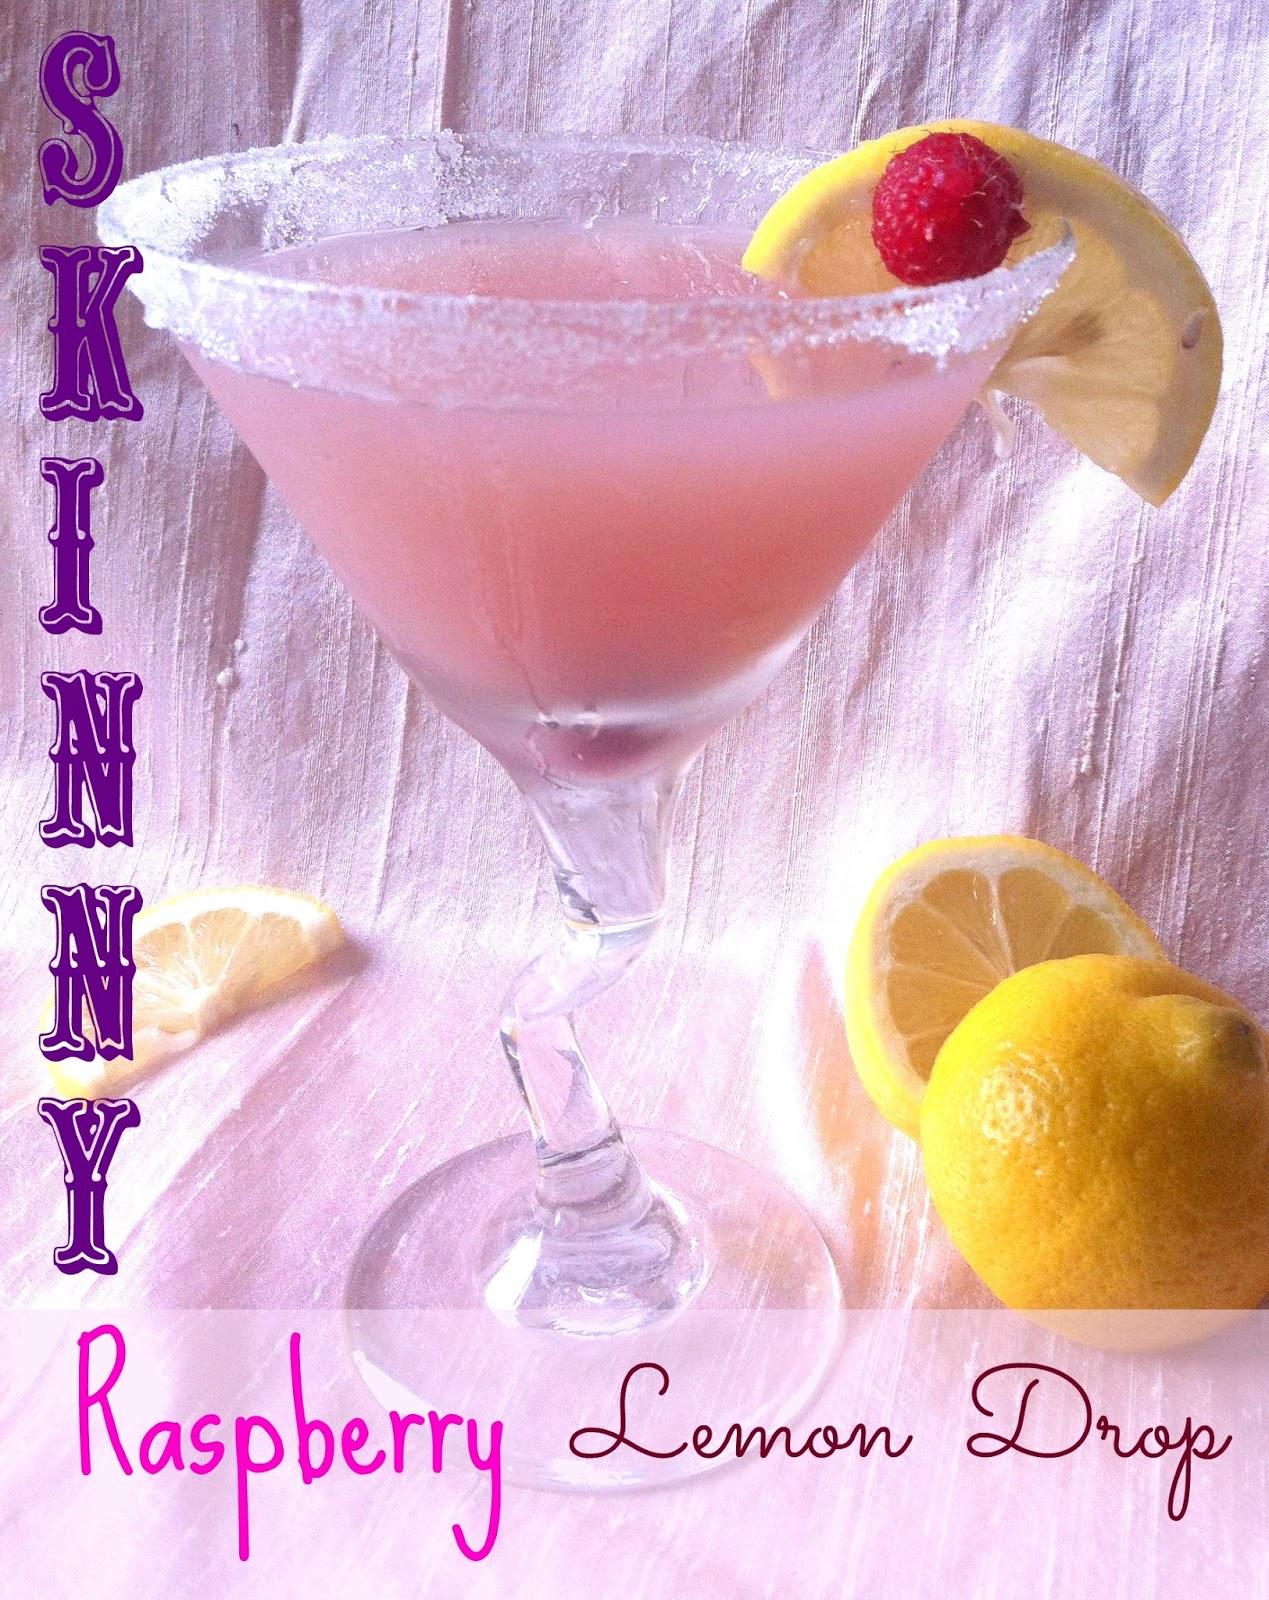 Yum! Raspberry Lemon Drop Martini